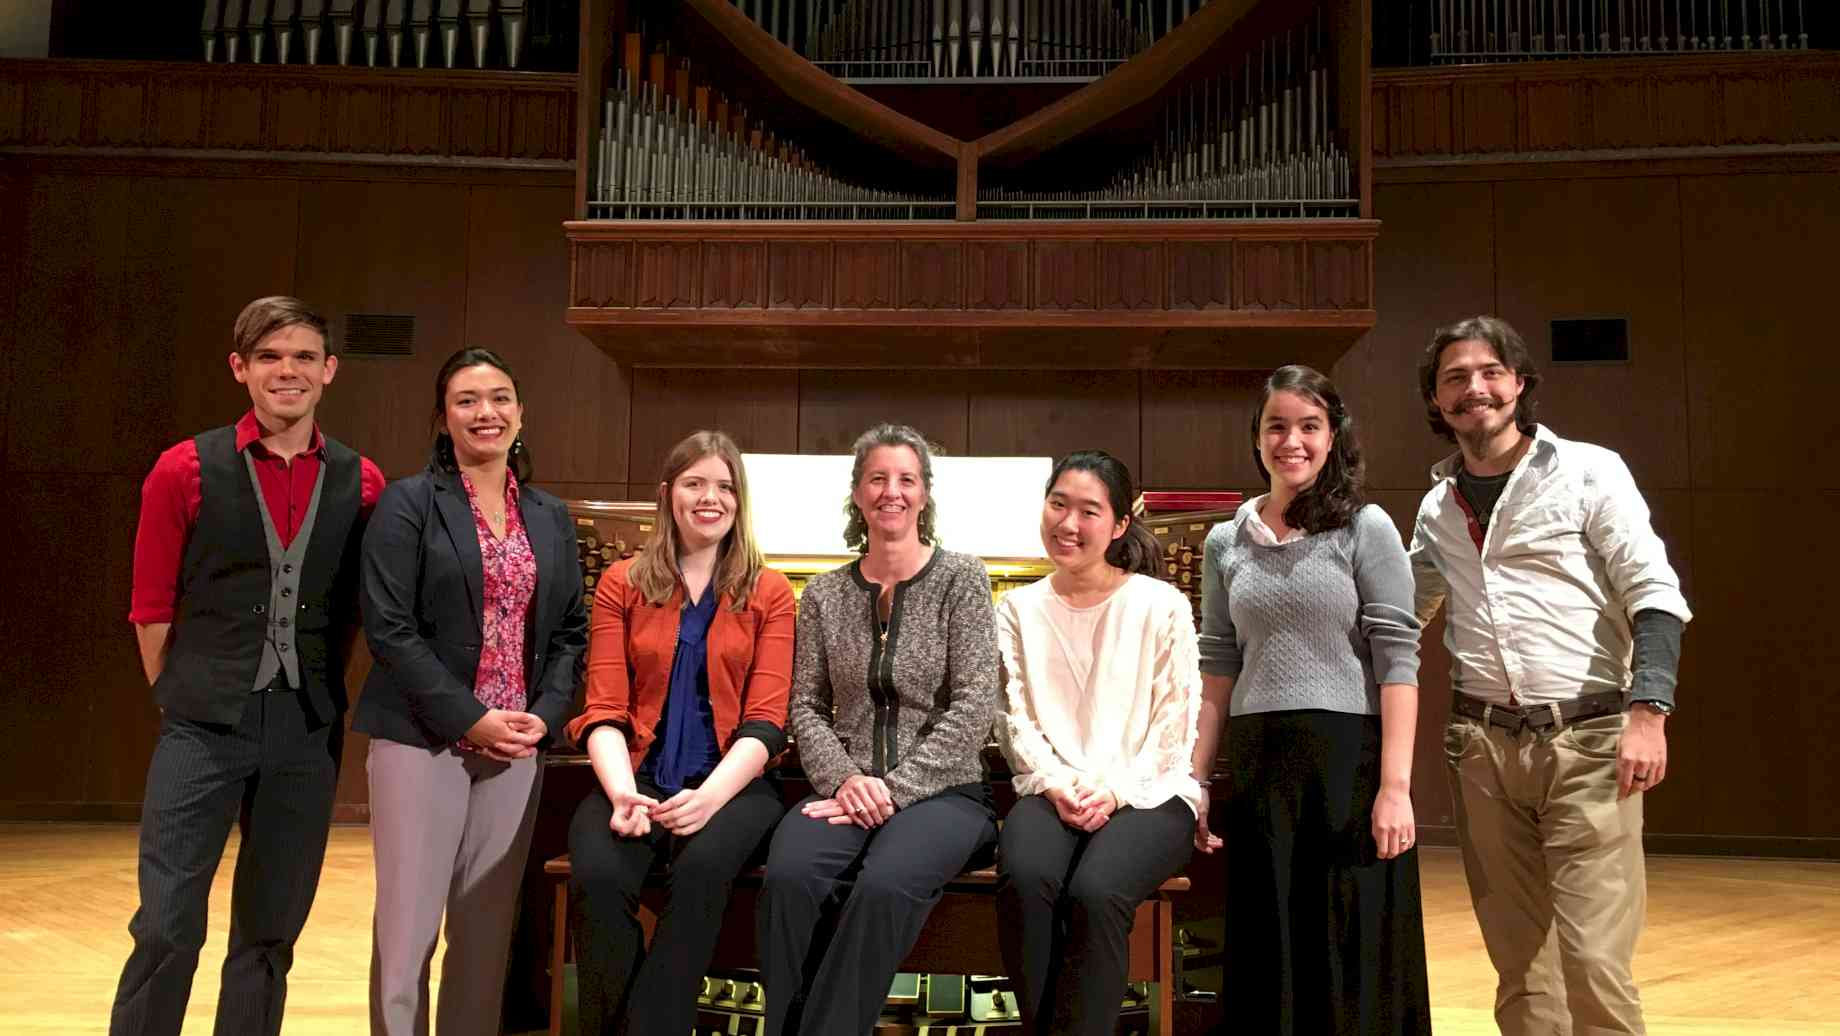 UF Organ Studio Recital, November 20, 2017